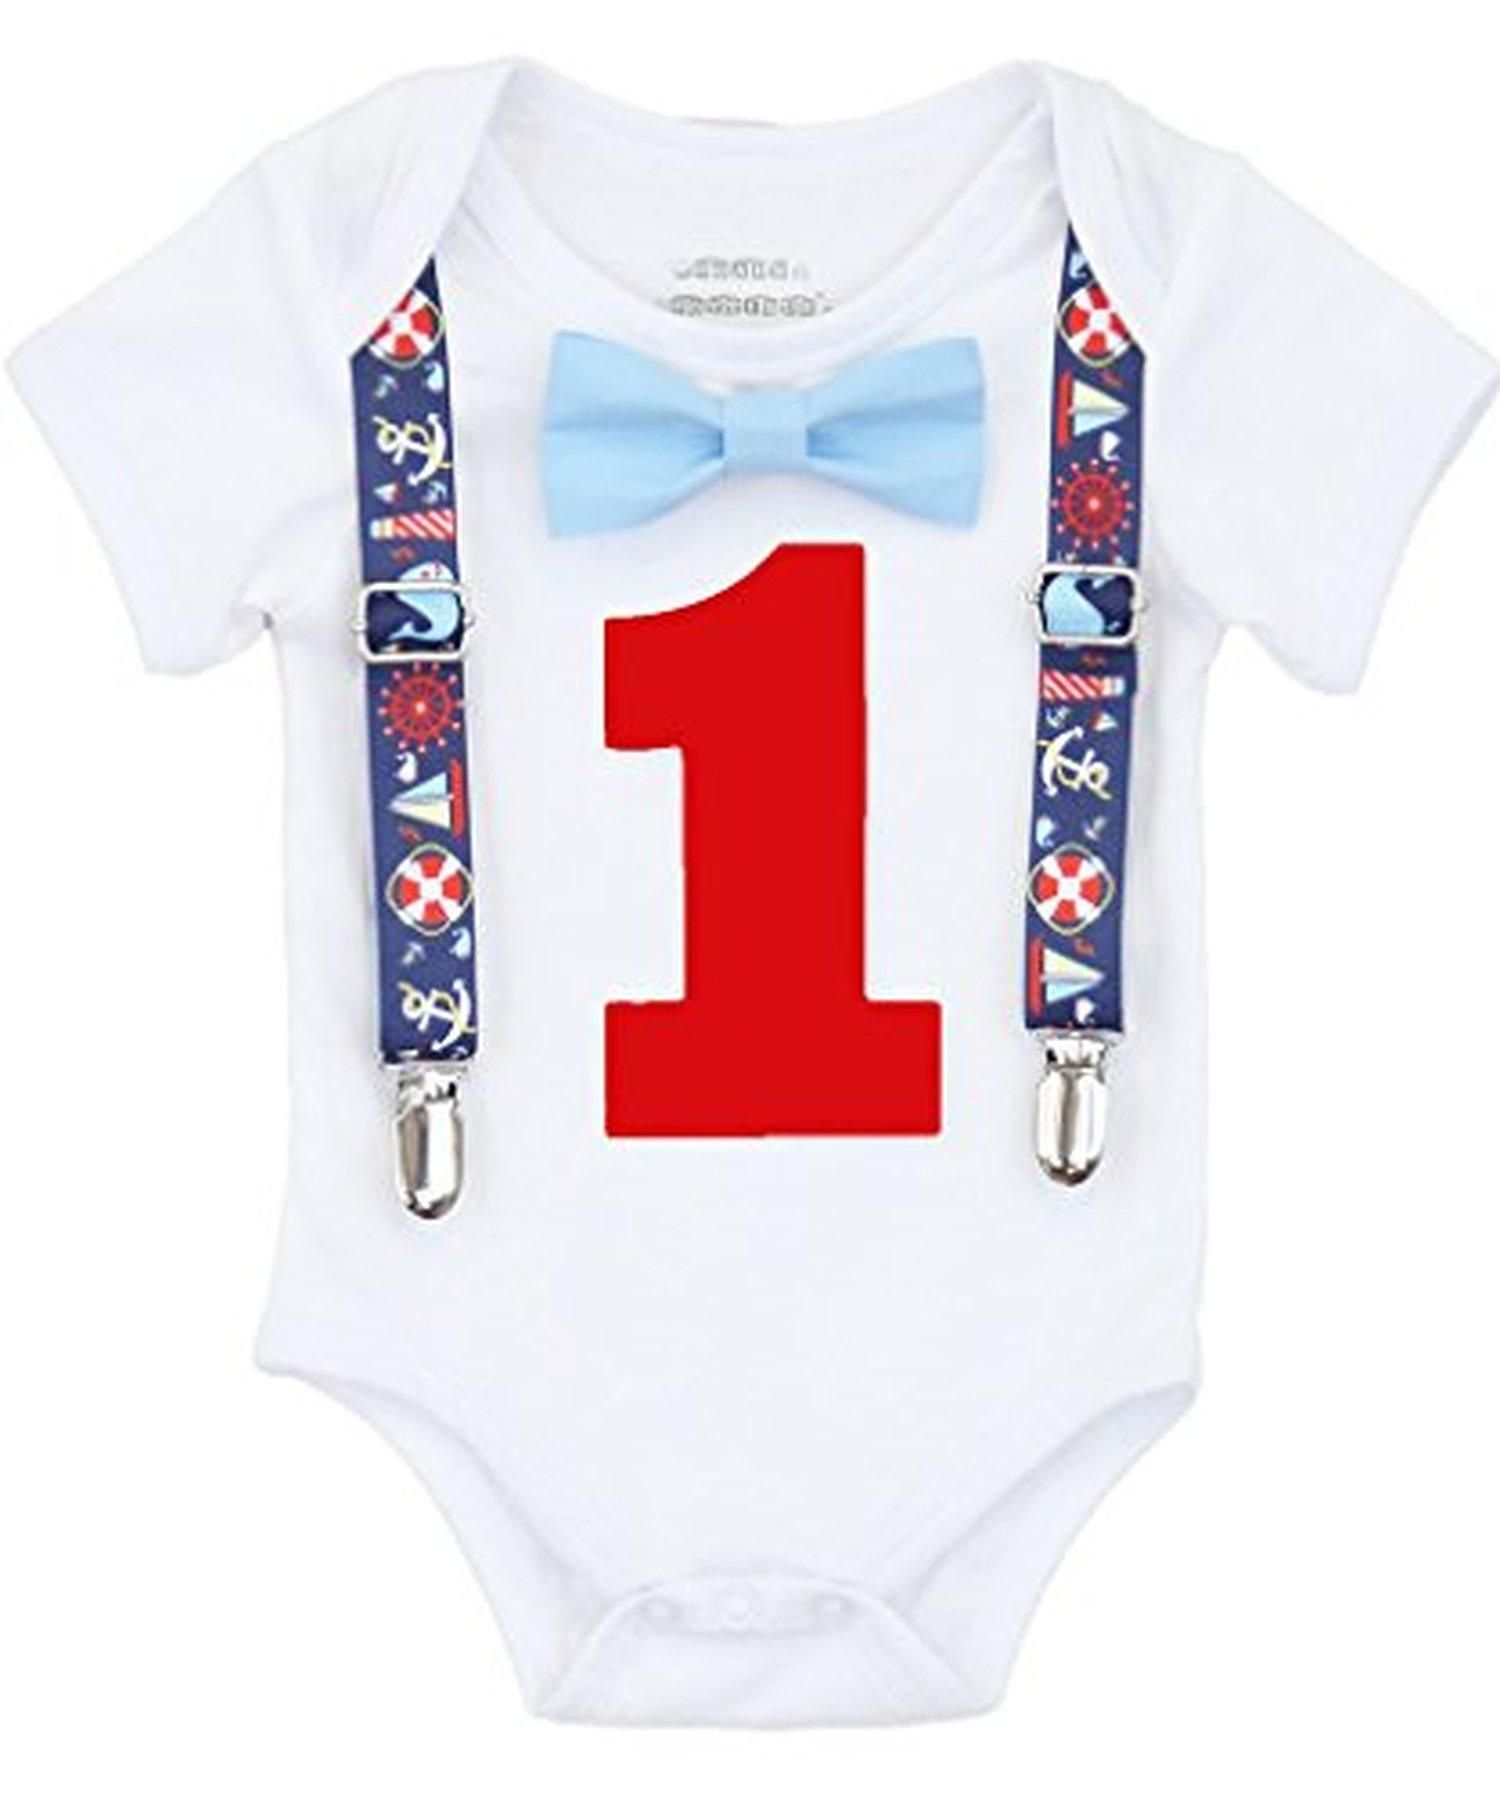 0a64dfd61 Noah's Boytique Baby Boys Nautical Whales First Birthday Outfit (12-18  Months) - Brought to you by Avarsha.com